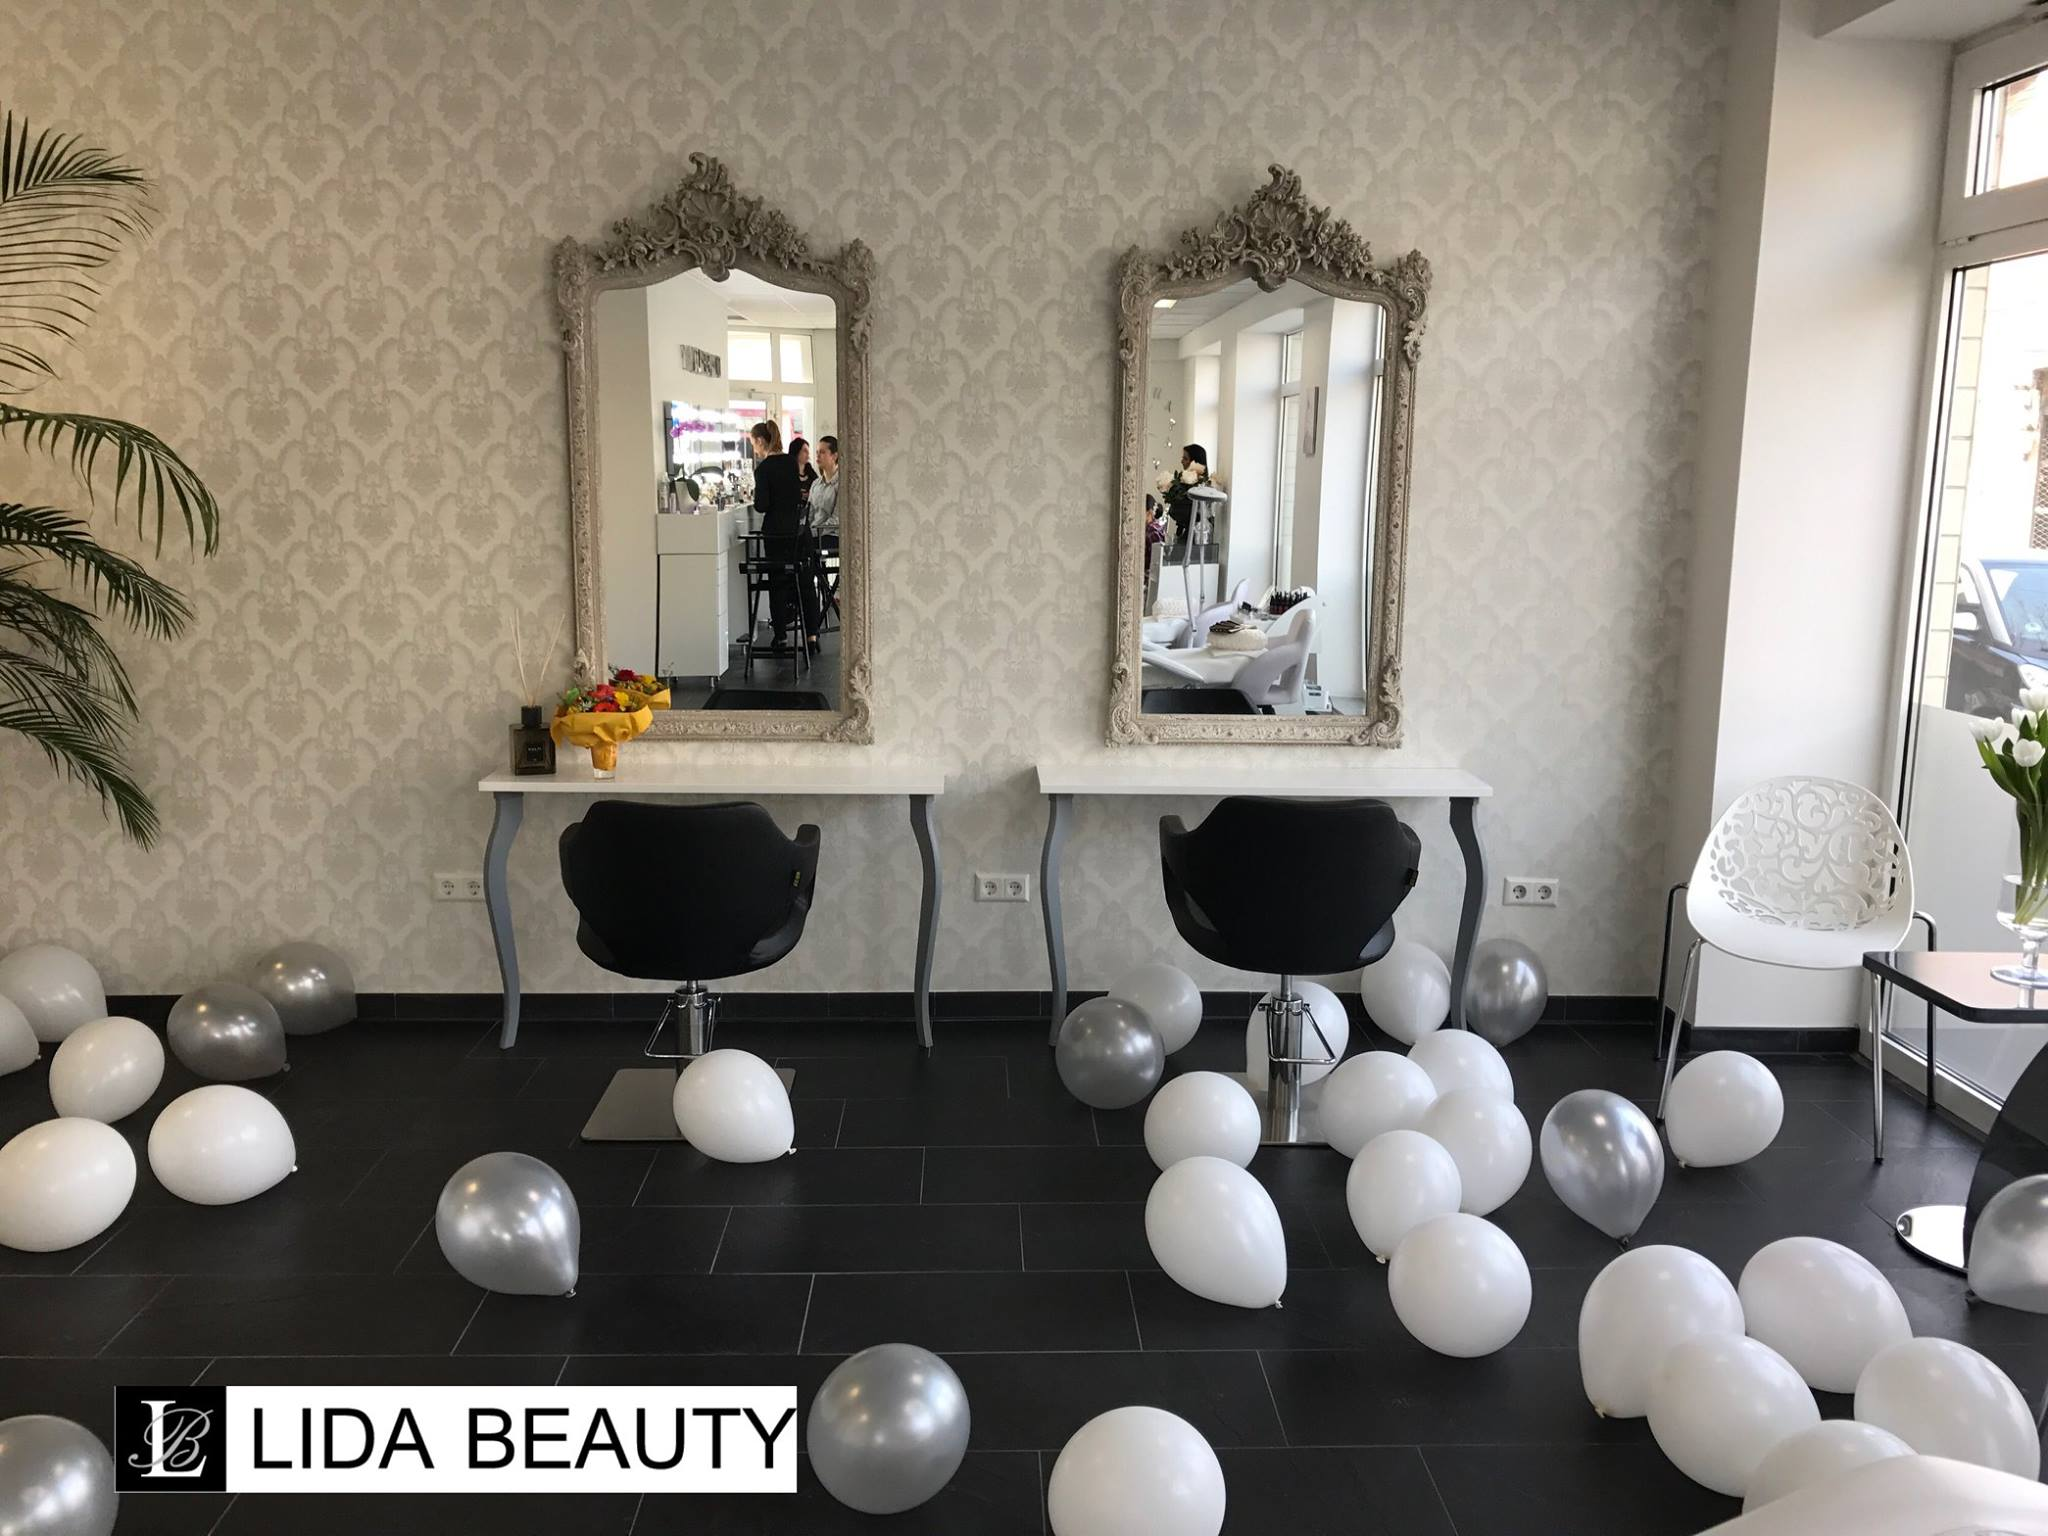 LB Lida Beauty - Hairstyle Bereich